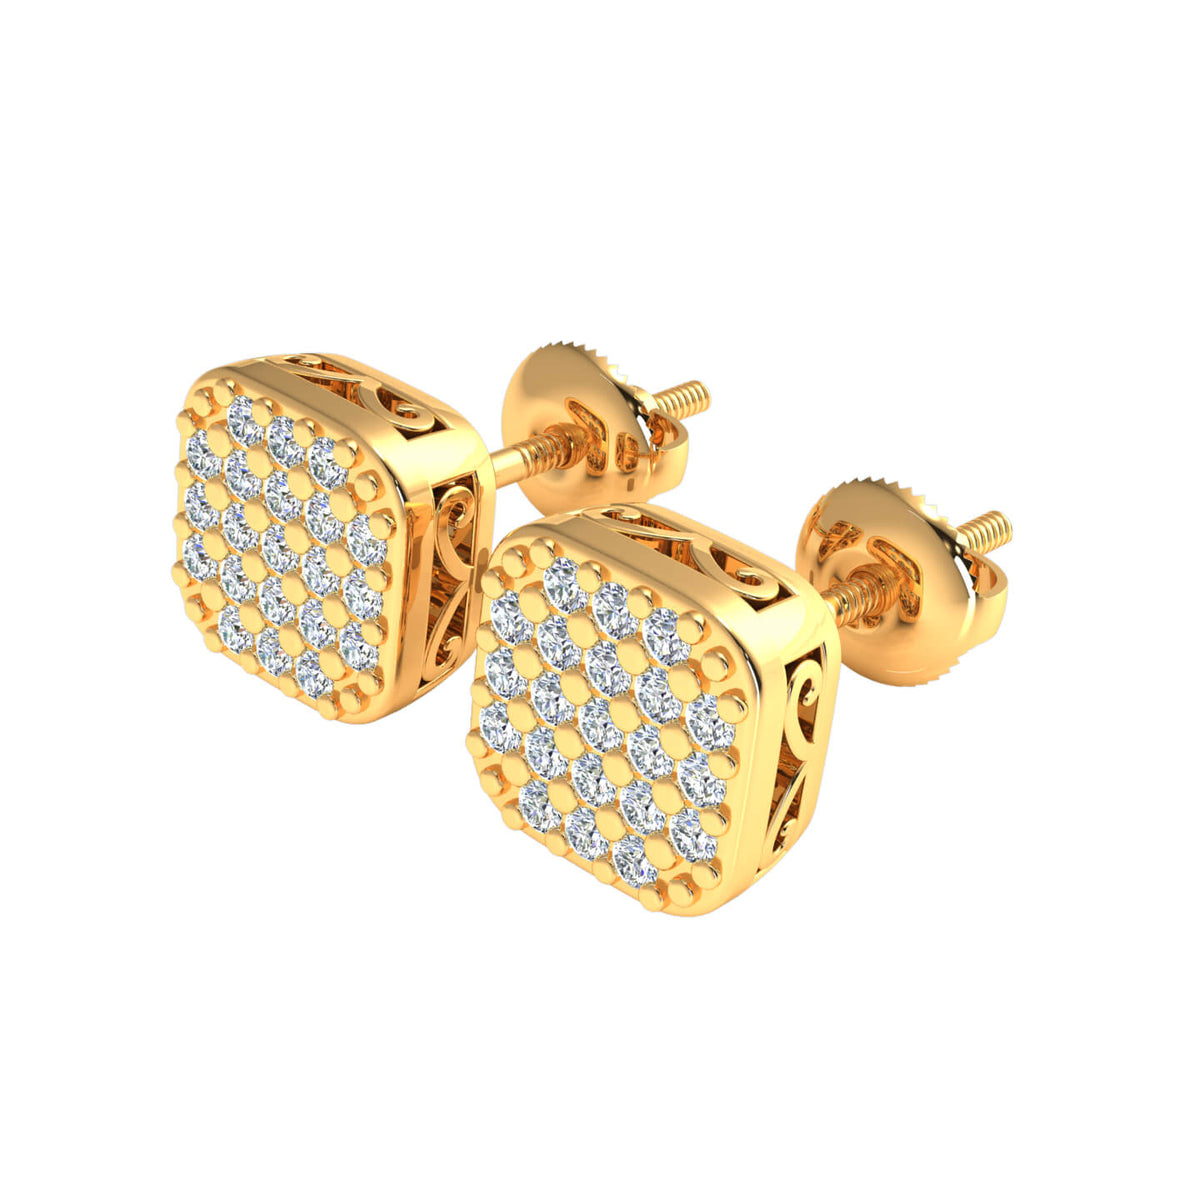 0.20 Ct Square Round H SI2 Diamond Stud Earrings For Womens 10k Gold